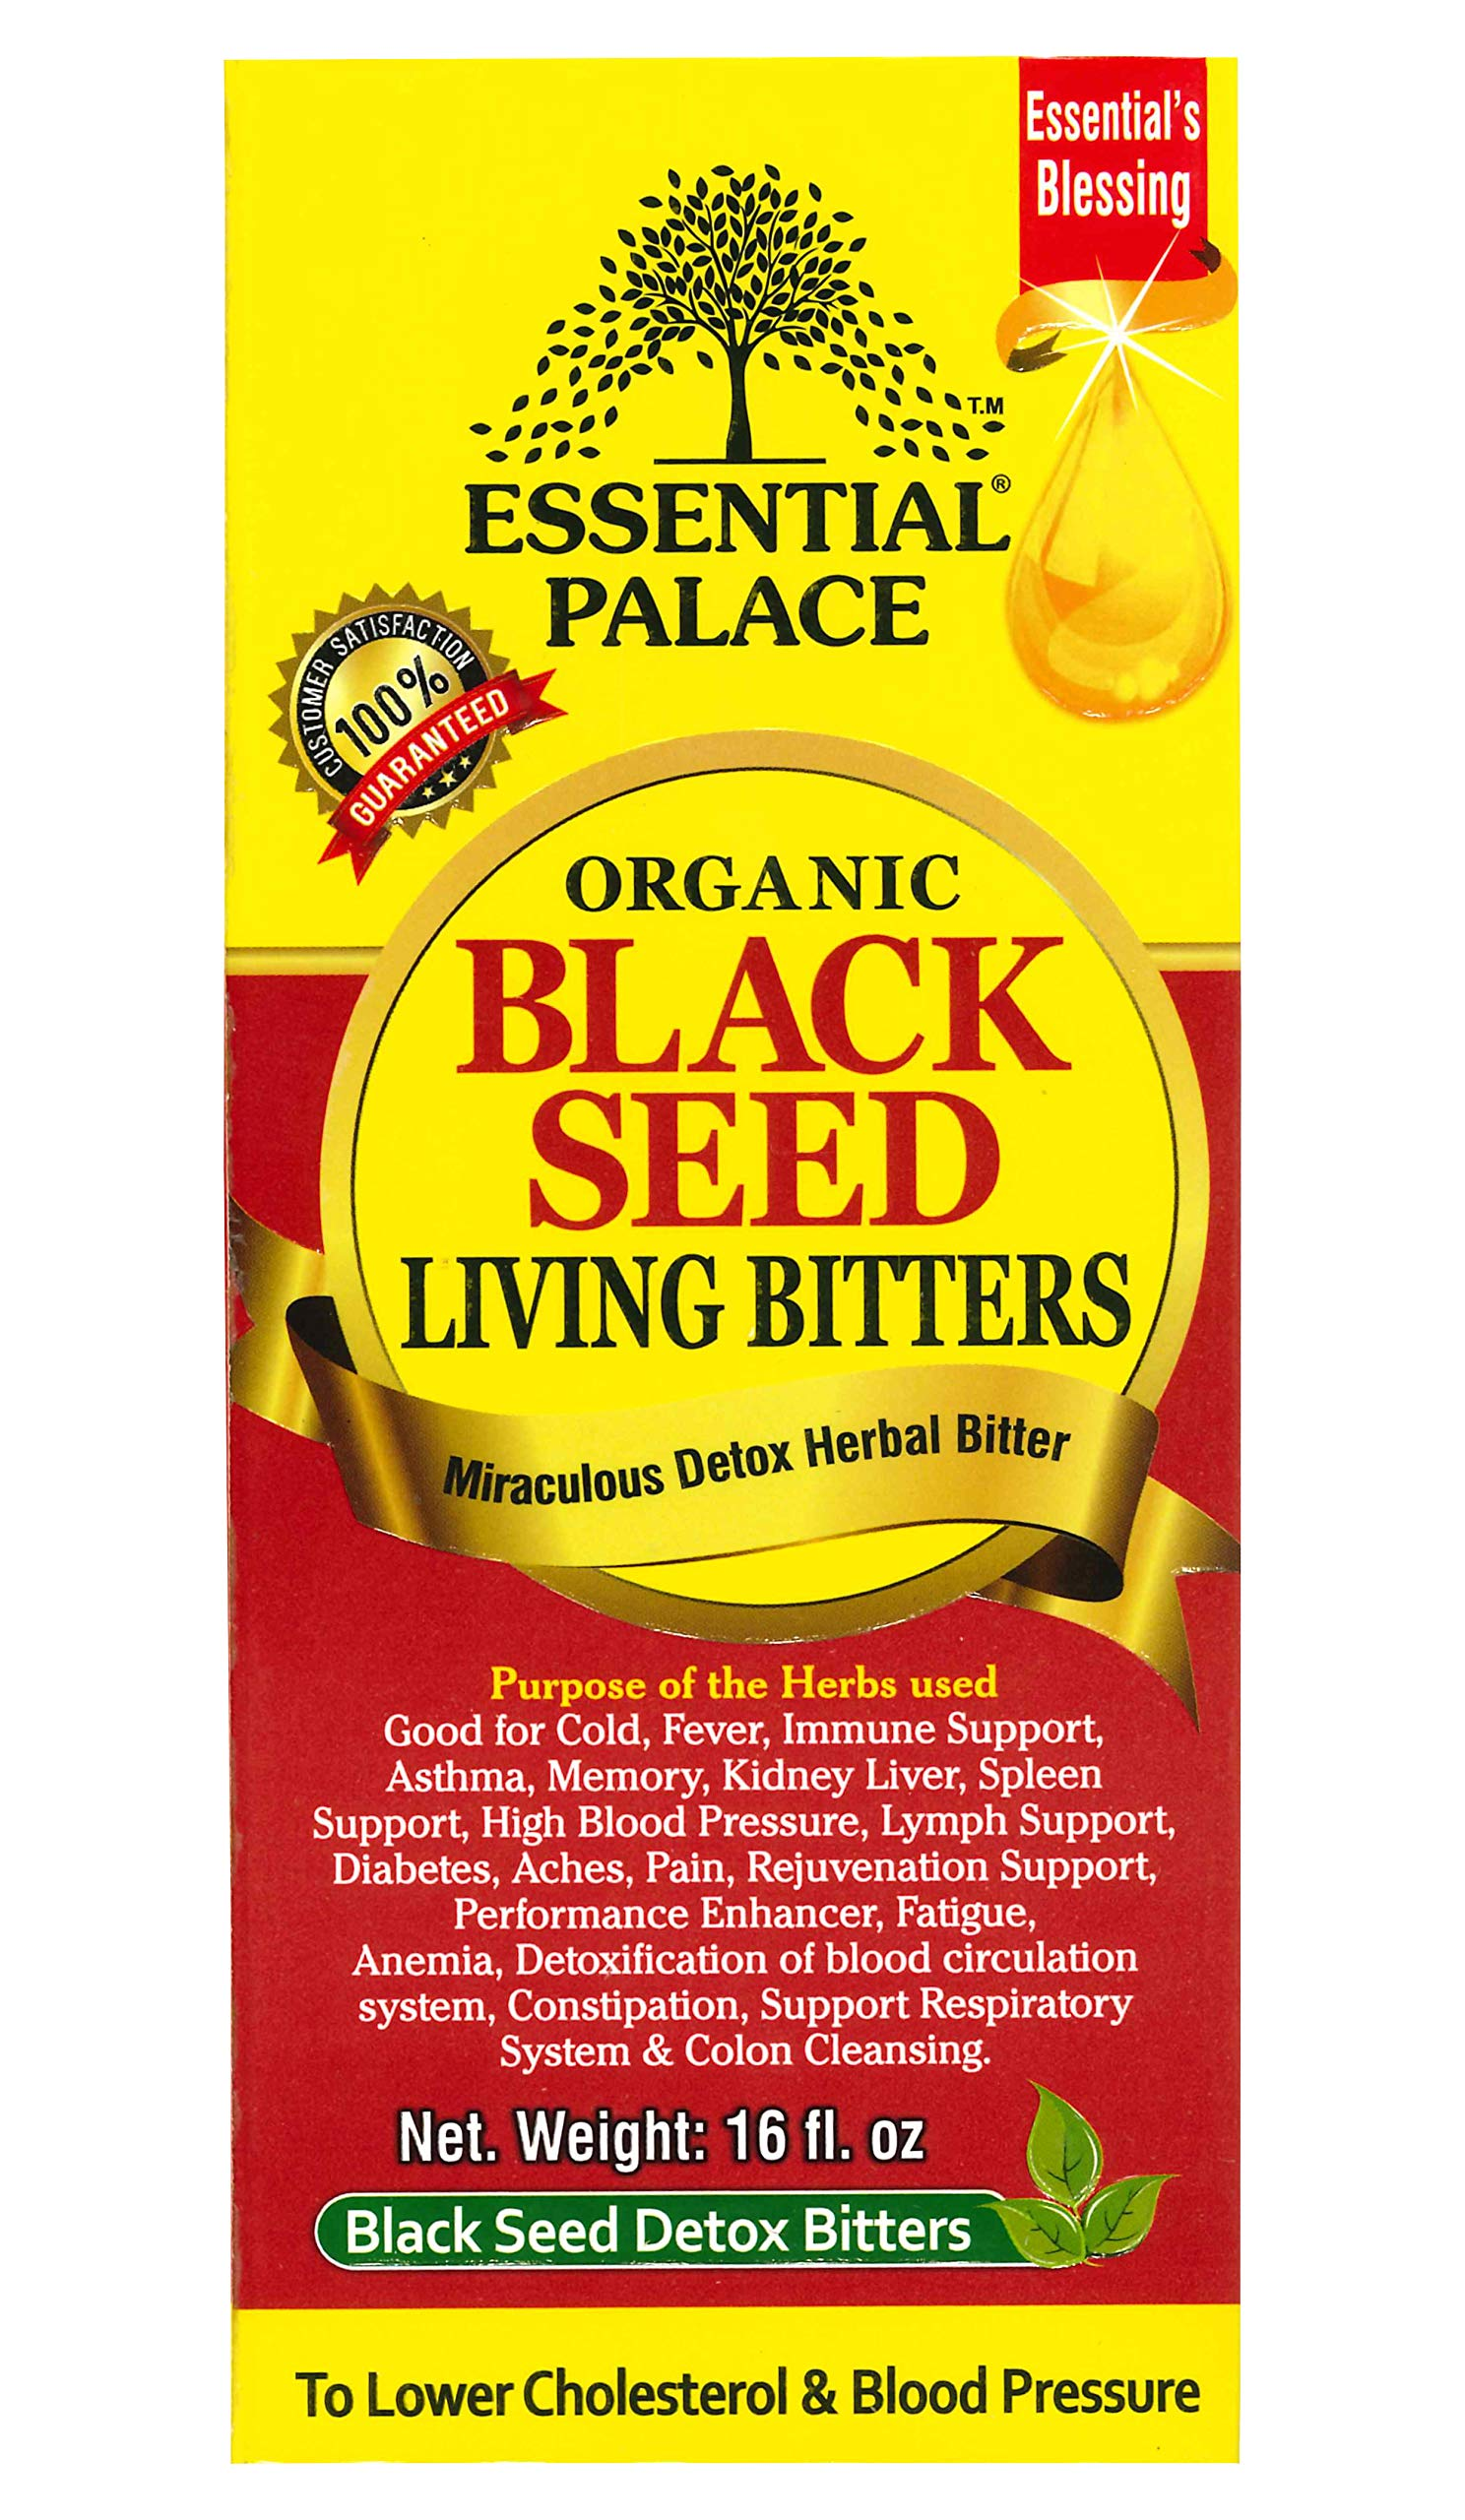 Essential Palace Organic Black Seed Detox Living Bitters [Pack of 2 - Brown - 16 oz.] by Cultural Exchange